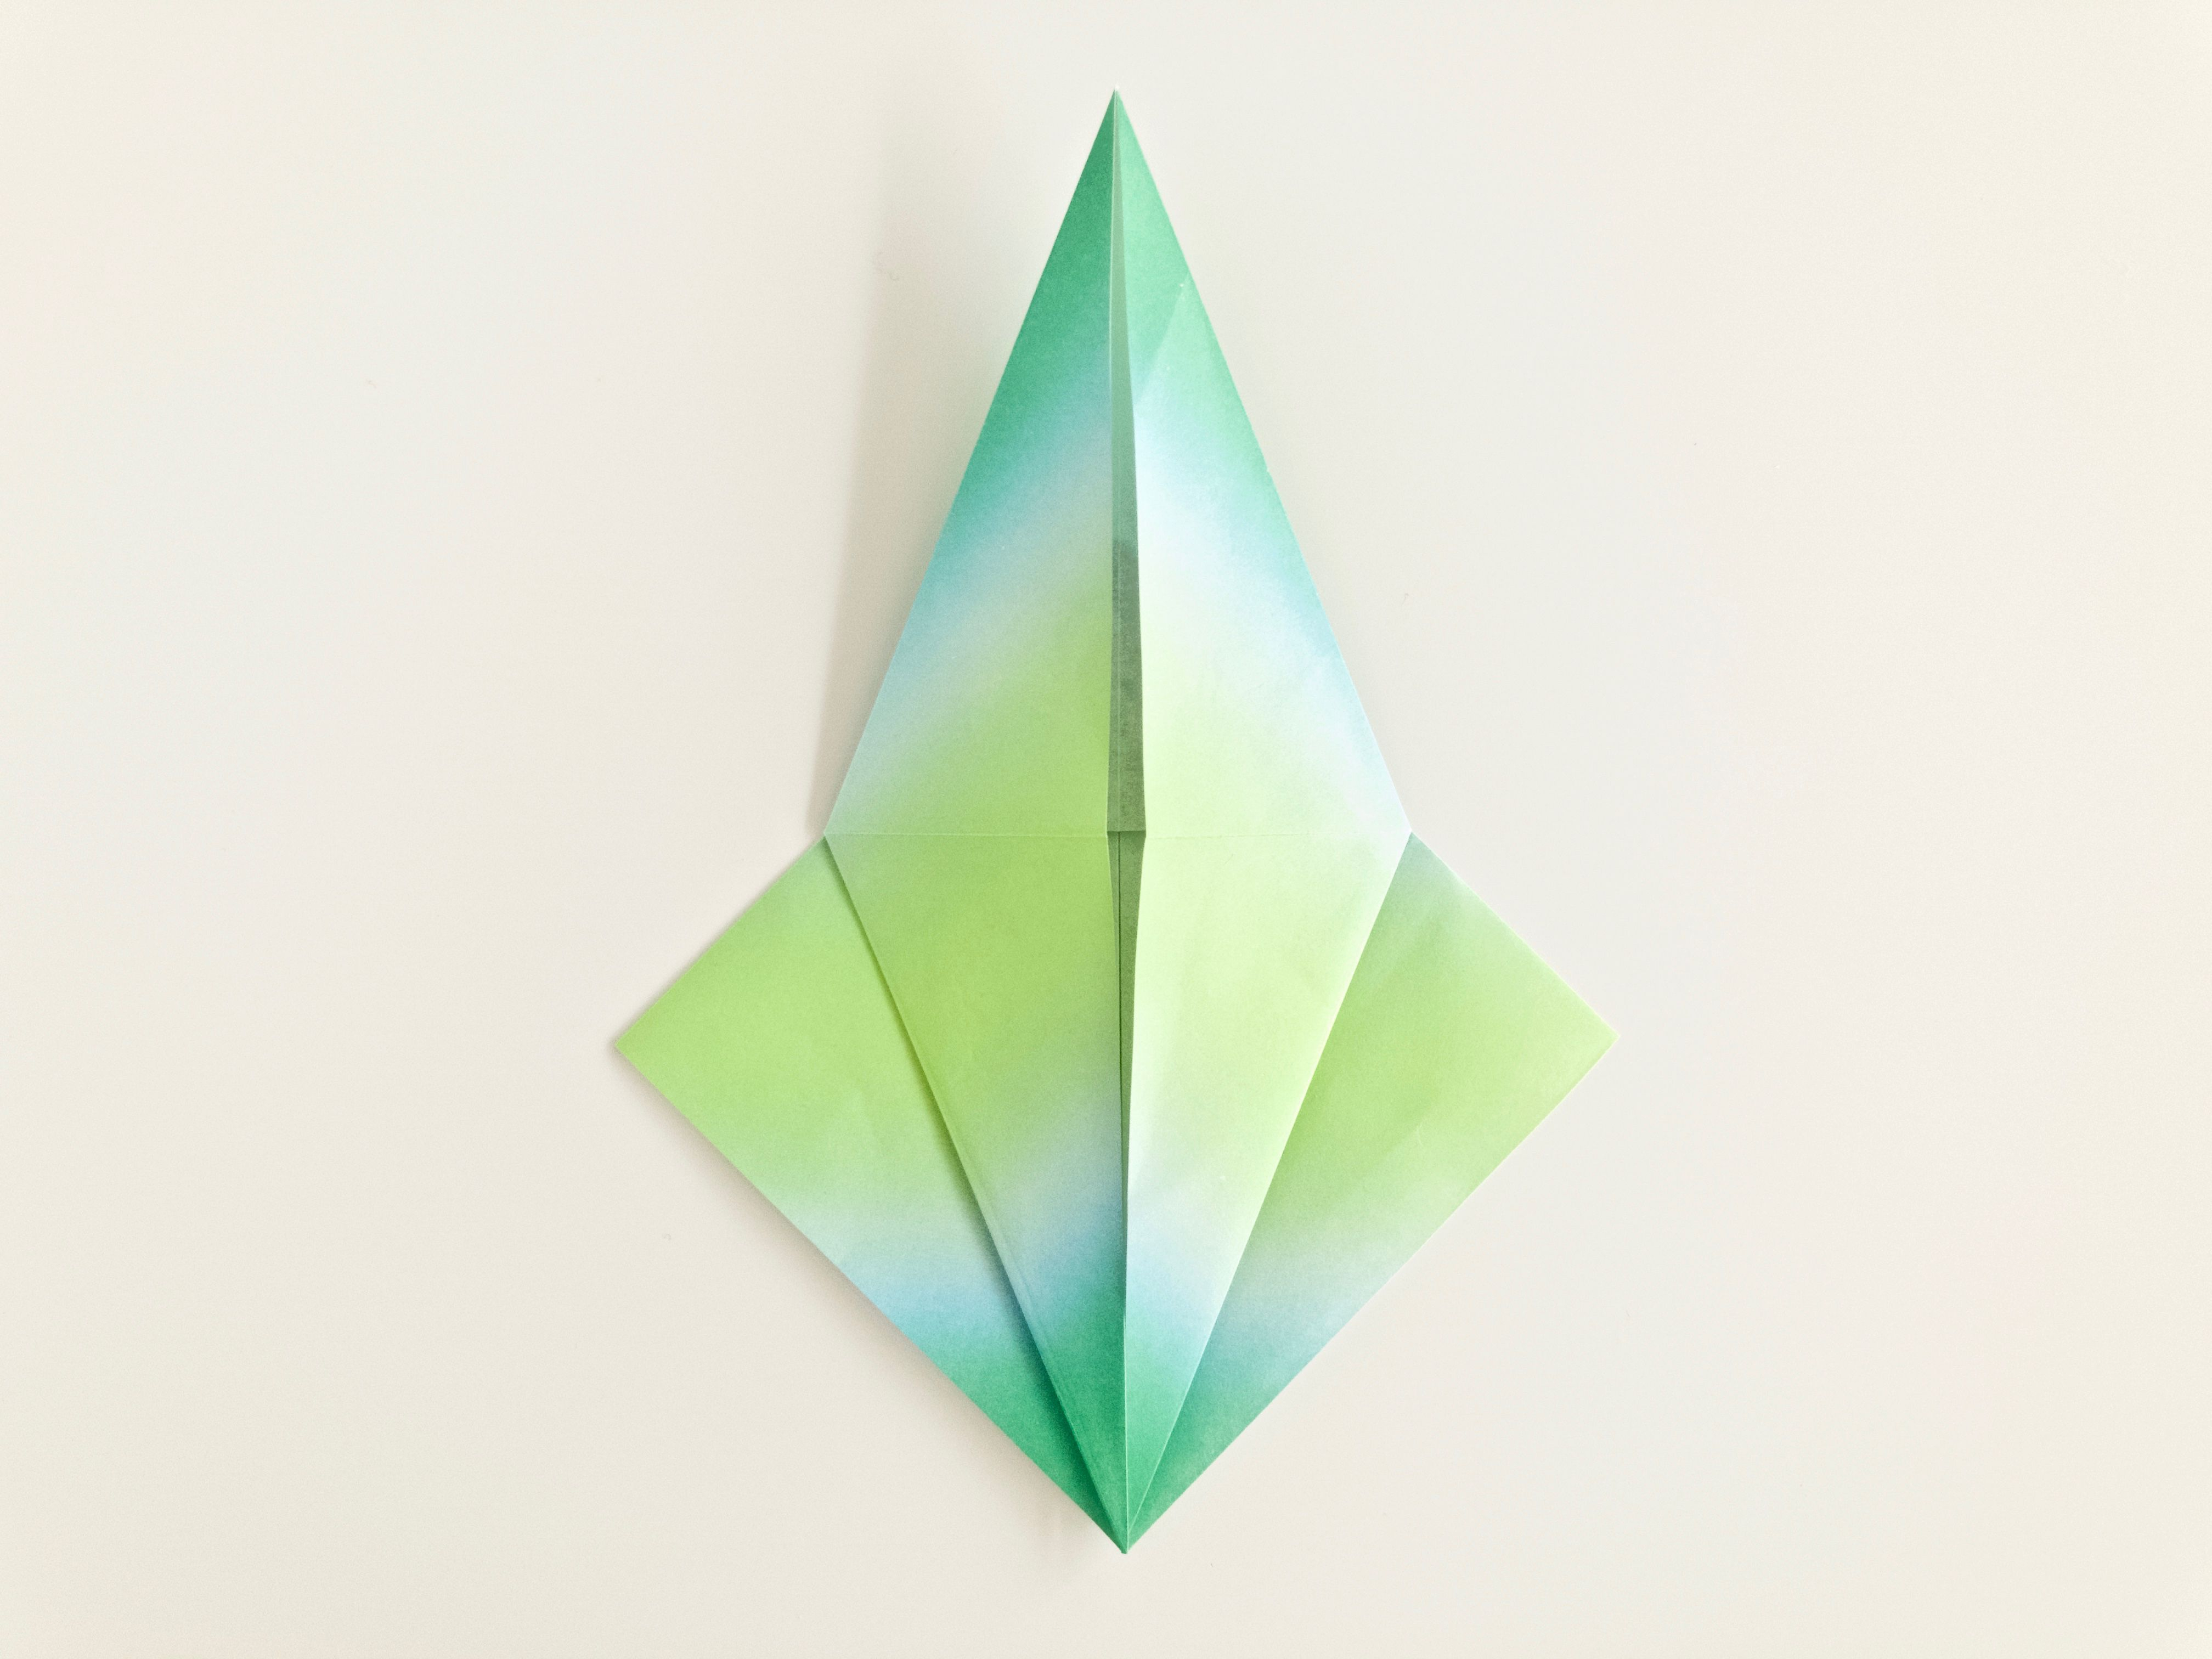 How To Make A Bird With Origami Easy Origami Crane Instructions